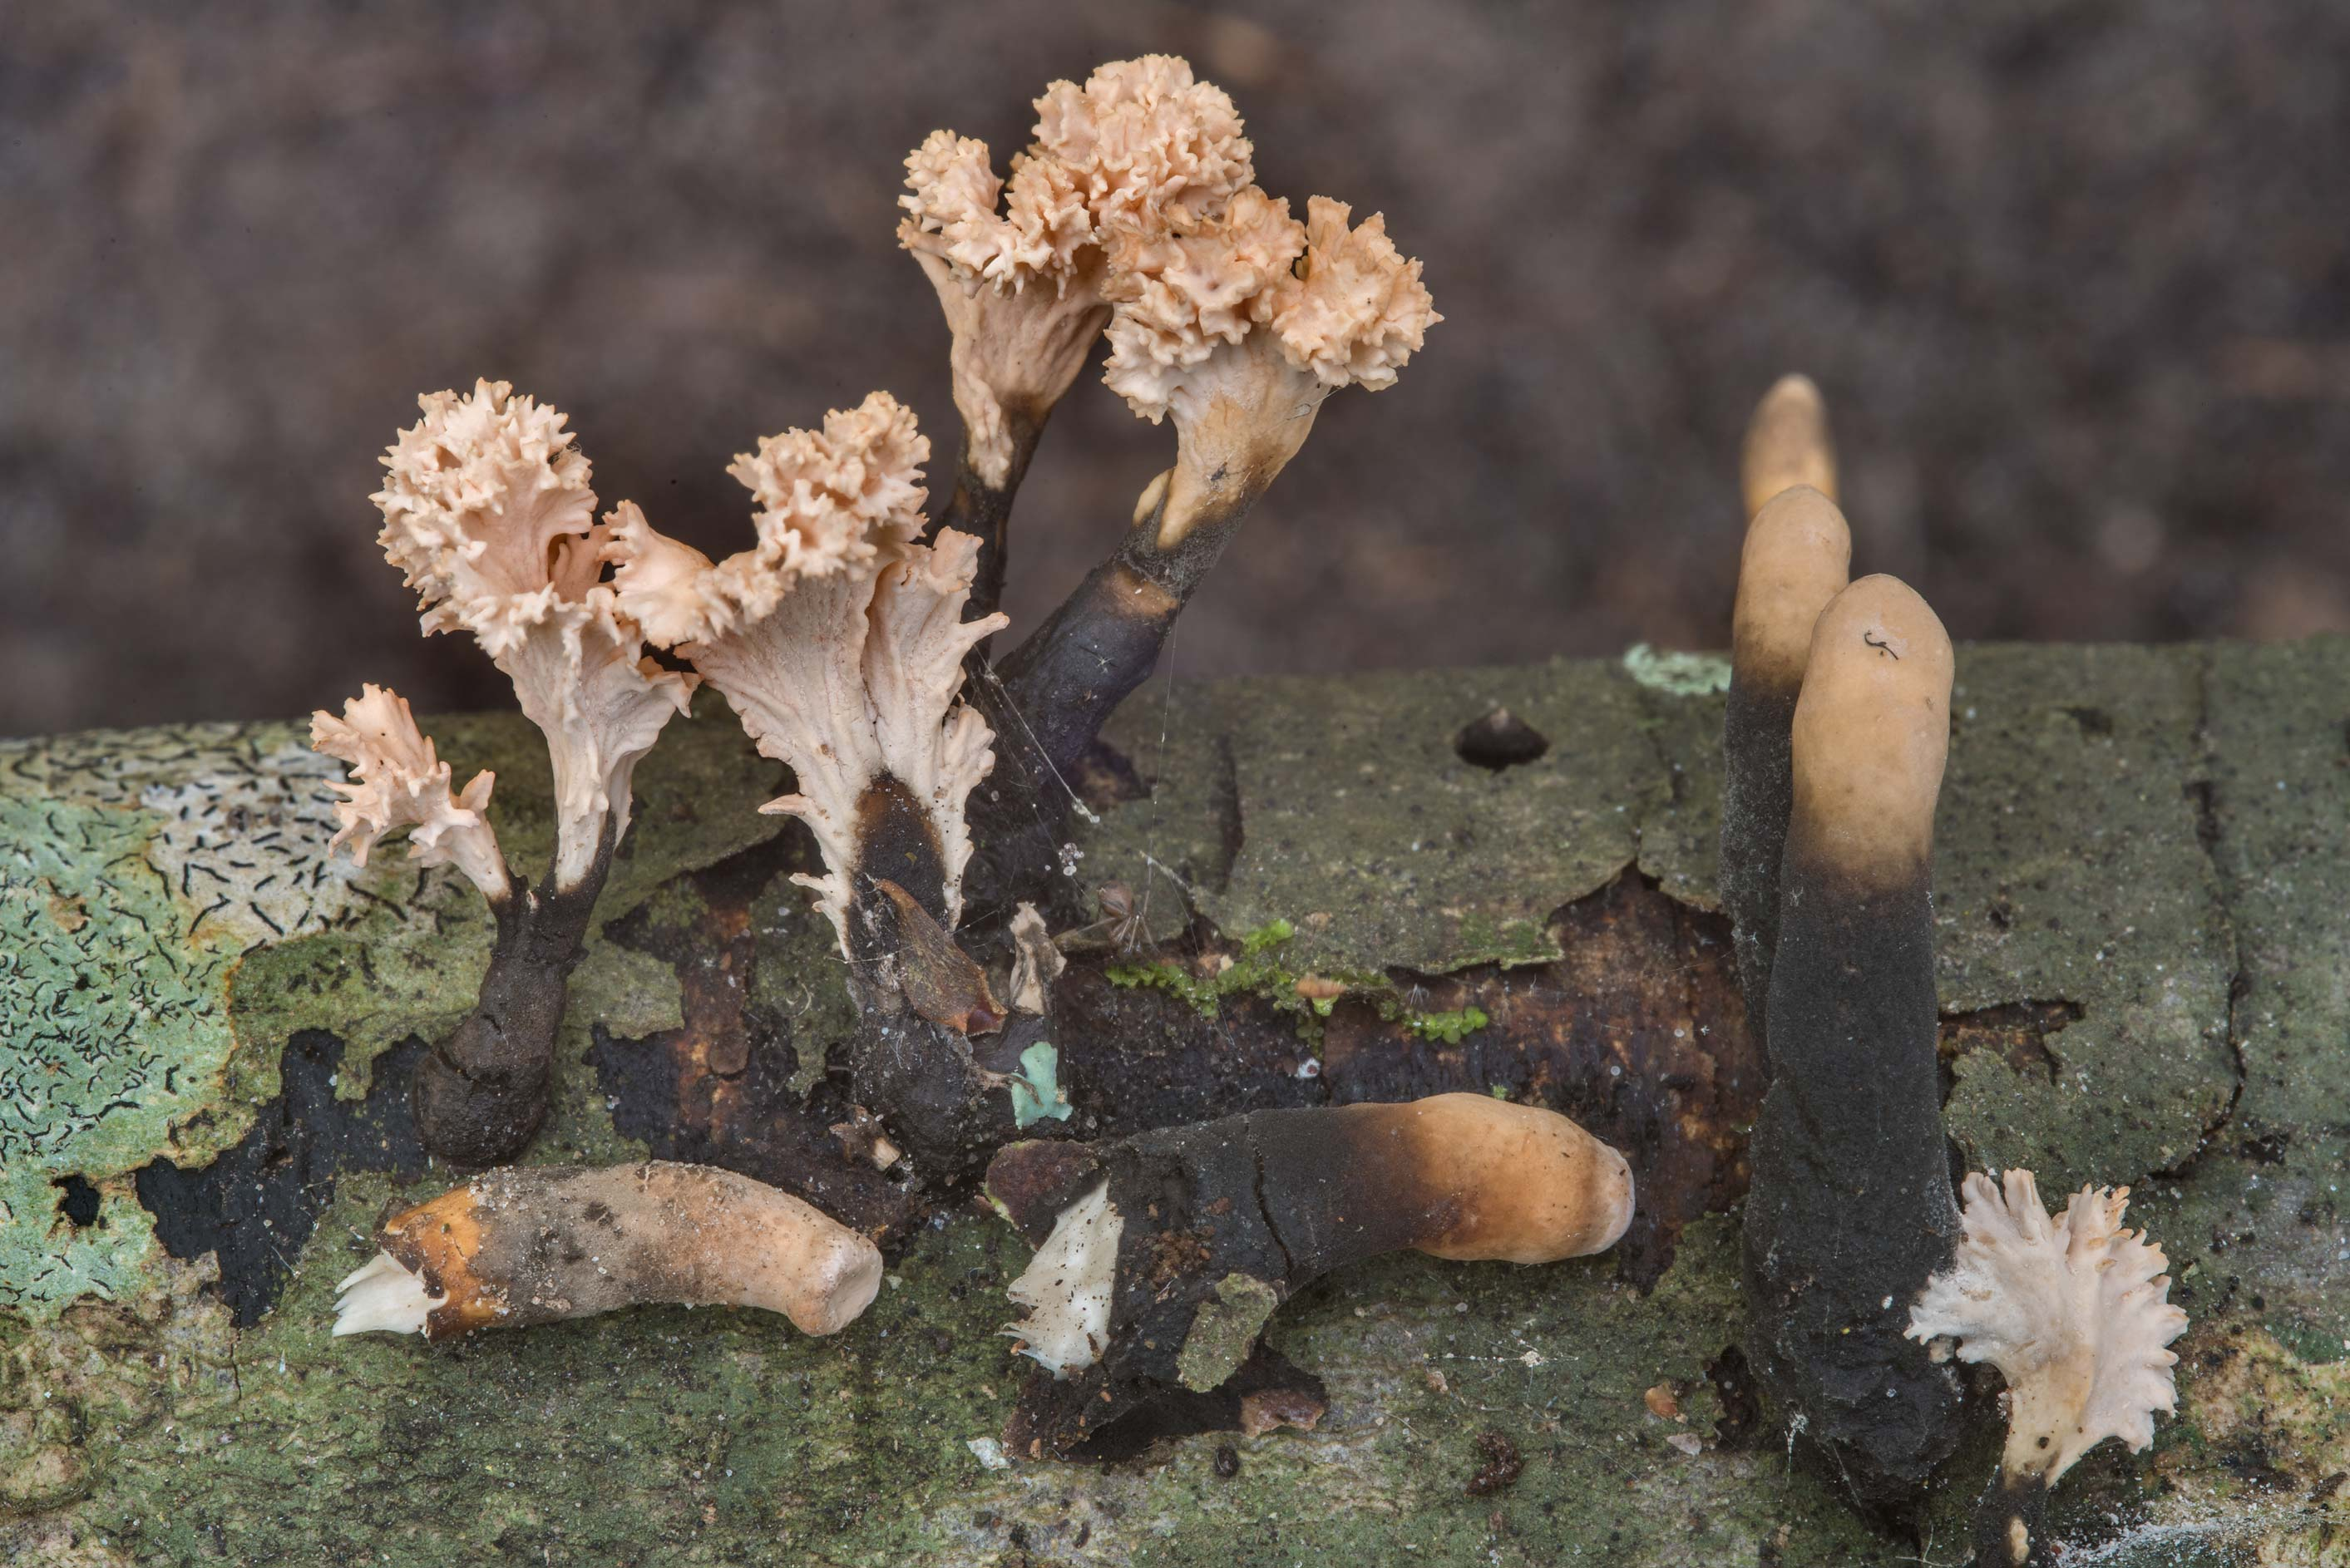 Xylaria cubensis mushrooms and their anamorph...in Hensel Park. College Station, Texas